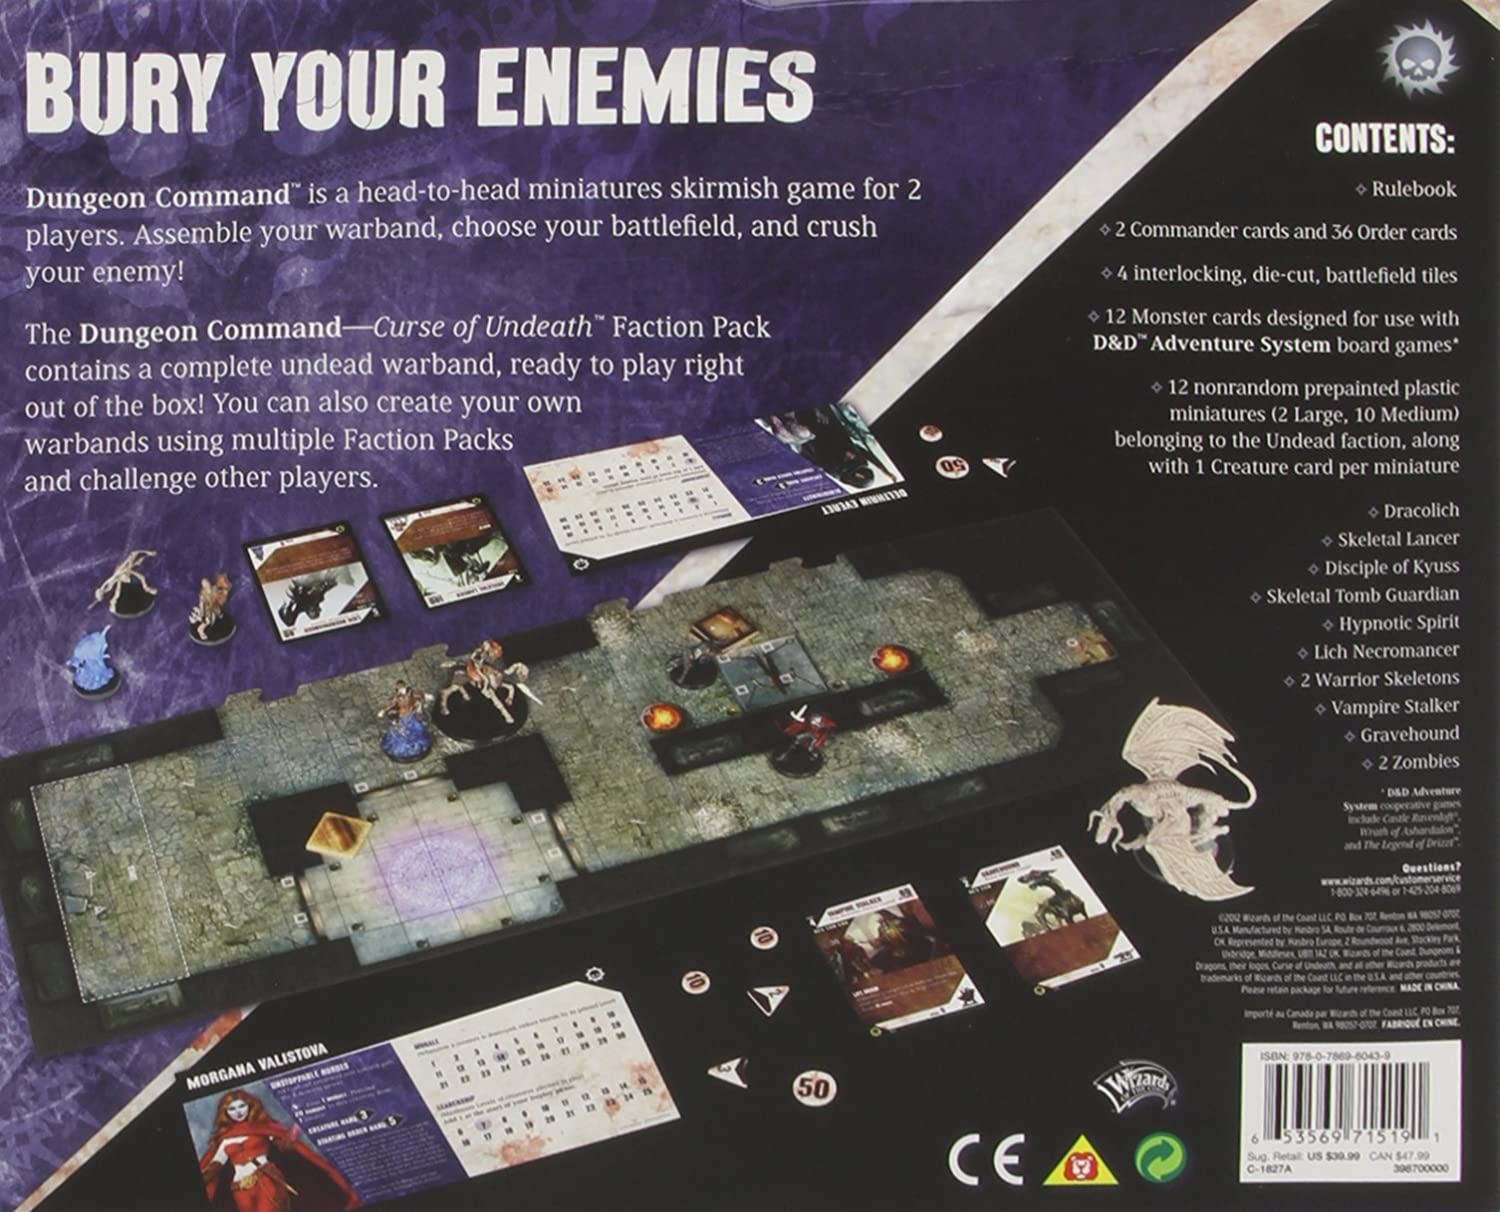 Role Playing /& Fantasy Games//Puzzles Pastimes /& Indoor Games Role-playing war games /& fantasy sports Dungeon Command Curse of Undeath Wizards of the Coast 398700000 Role Playing /& Fantasy ANF Hobbies and Games Games /& Activities